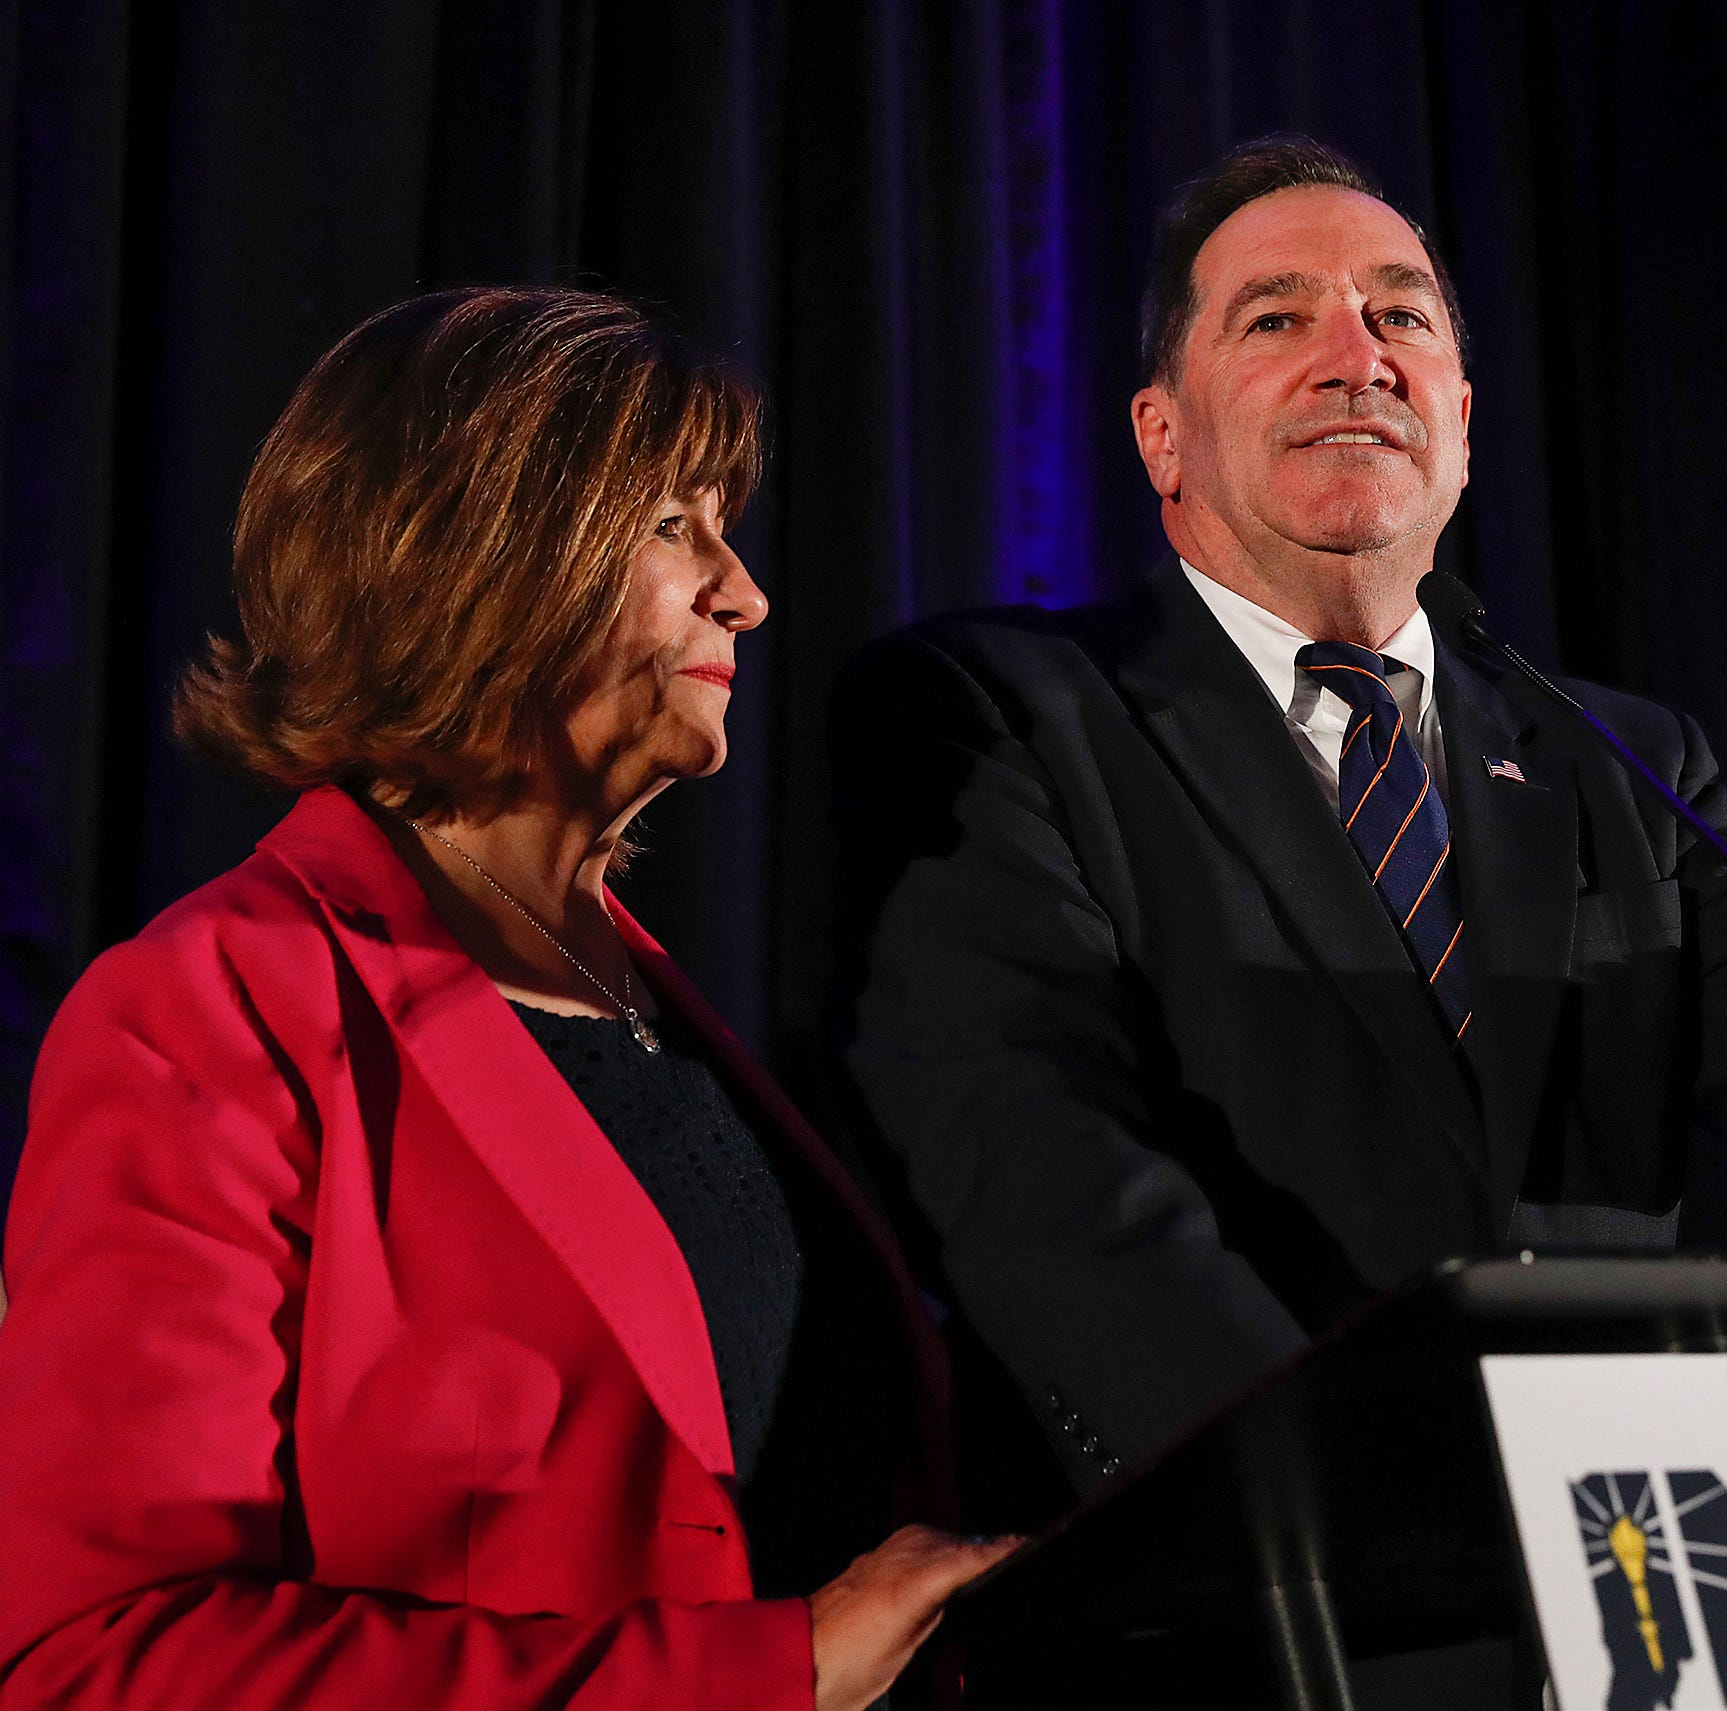 Former Sen. Joe Donnelly gets a job at Akin Gump, a top Washington lobbying firm